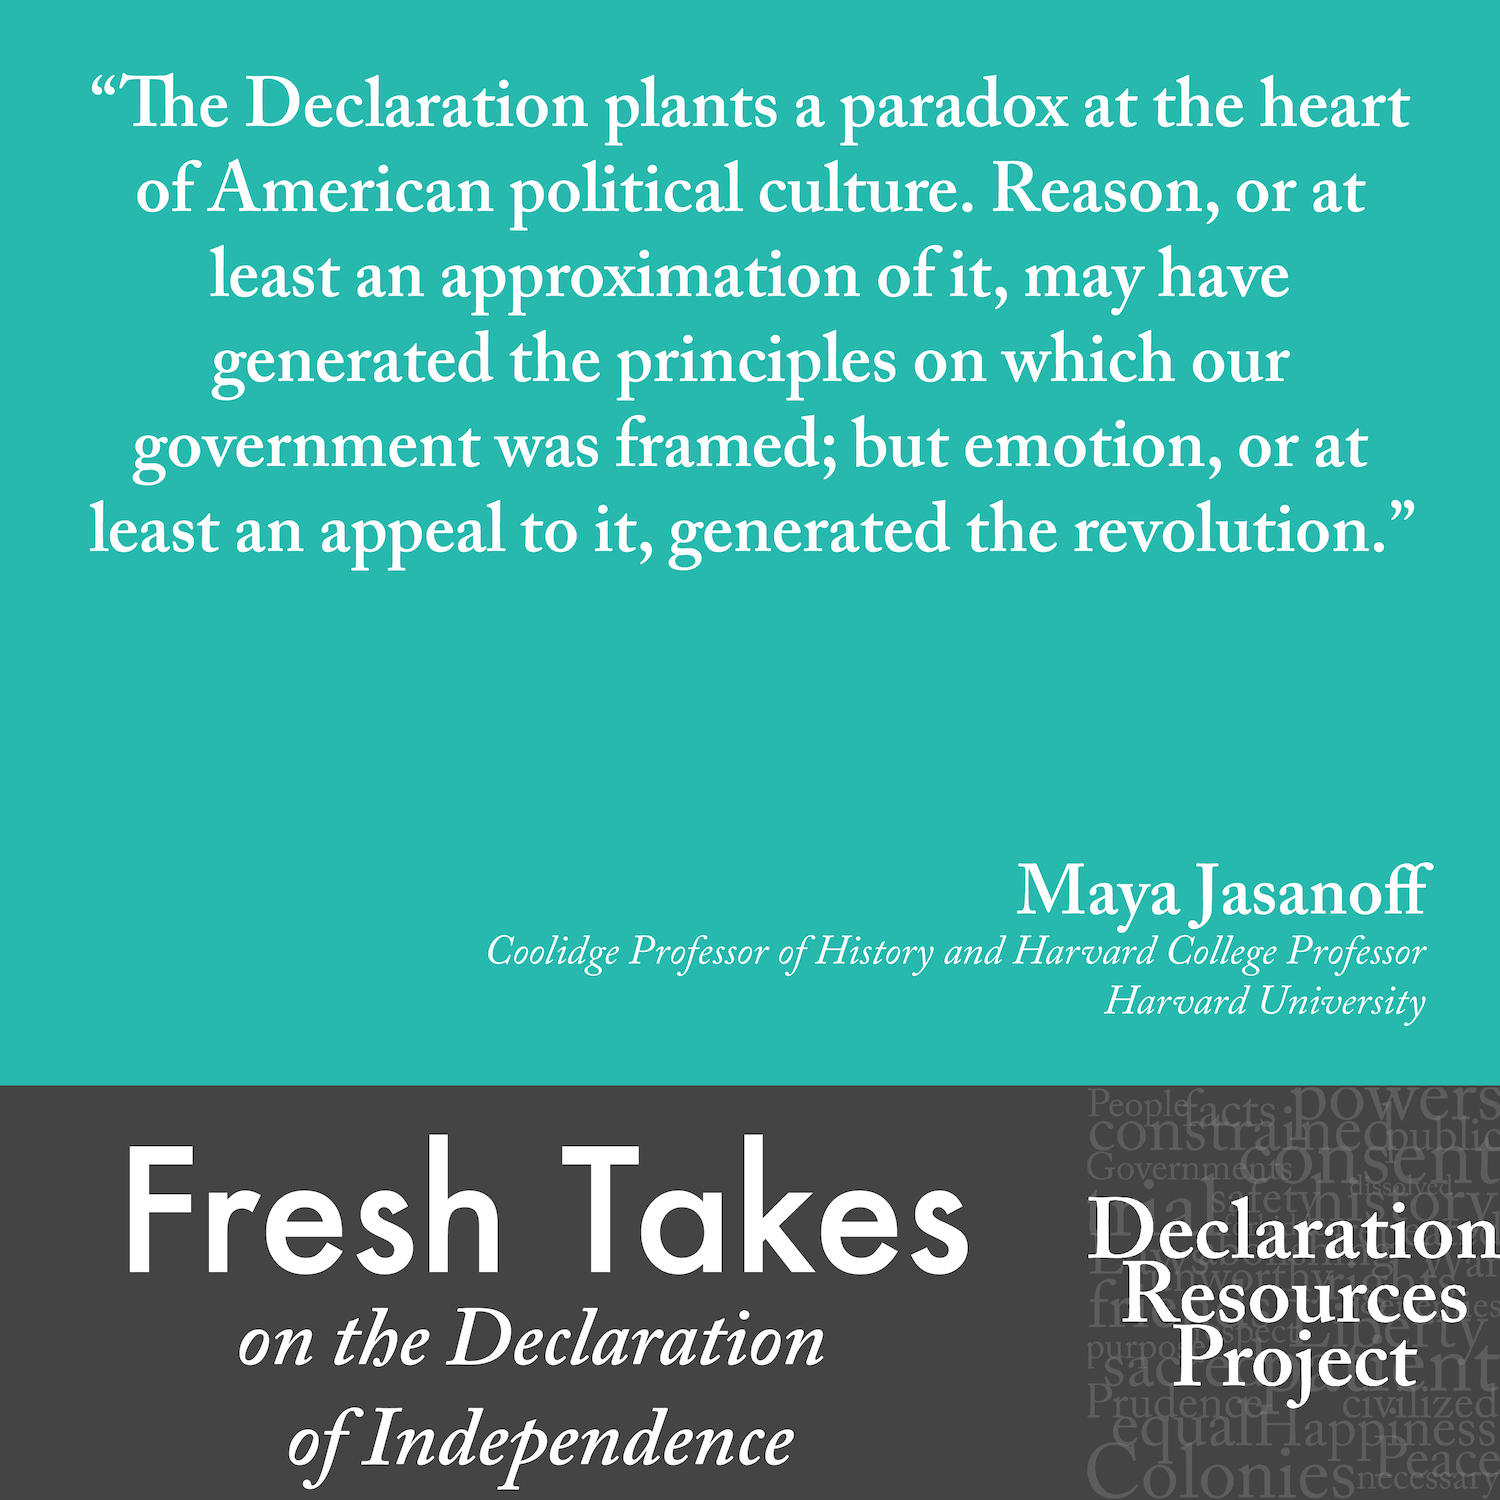 Maya Jasanoff's Fresh Take on the Declaration of Independence